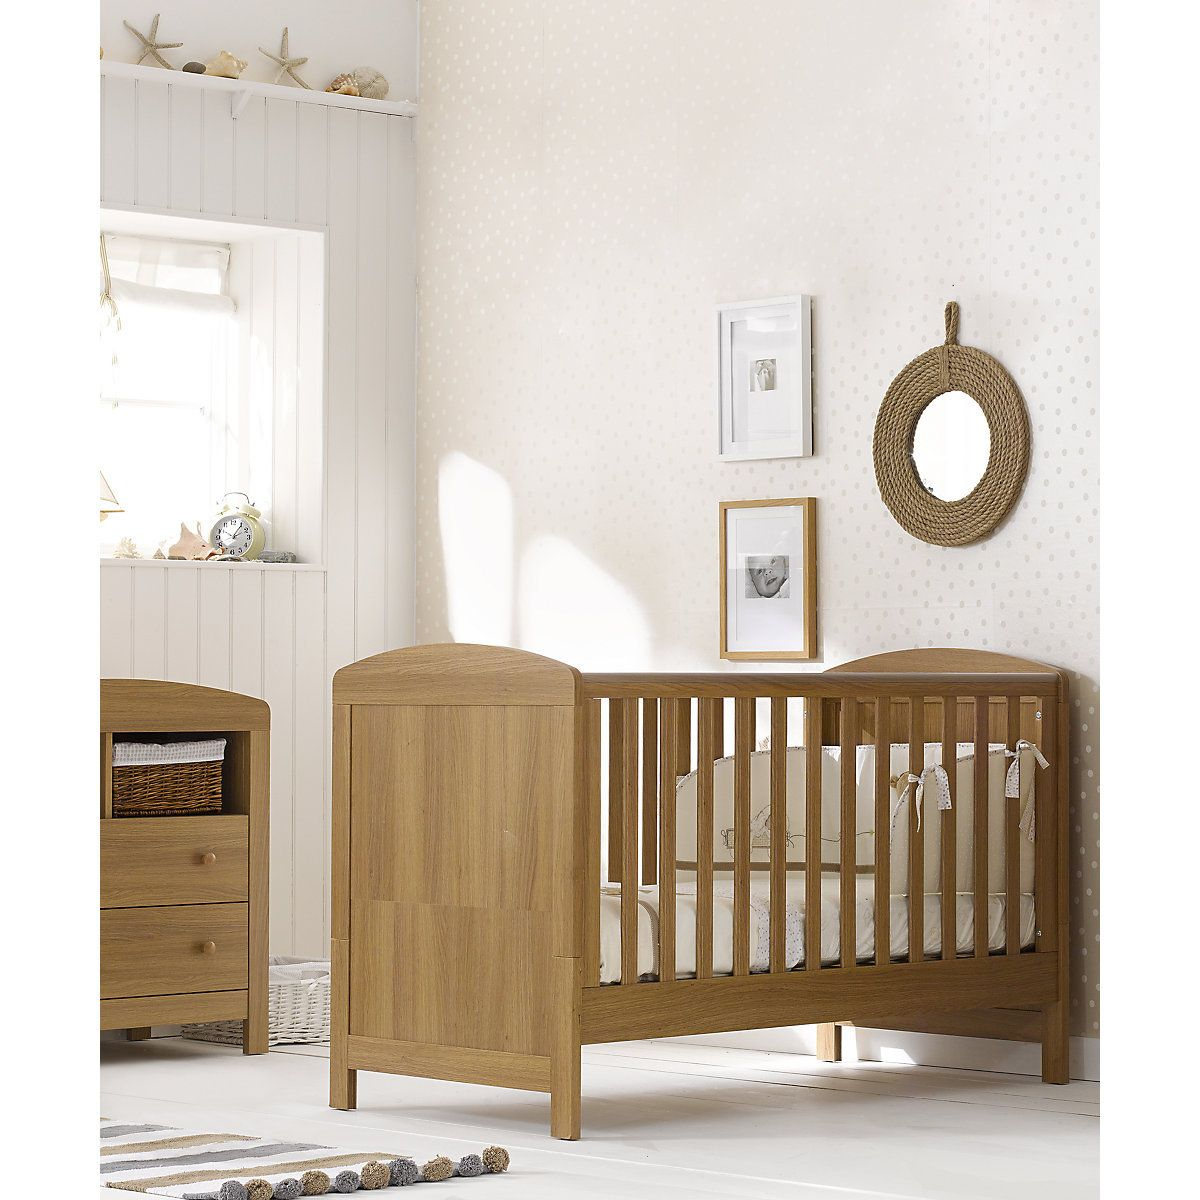 Mothercare Padstow Cot Bed- Oak Effect  Nursery furniture sets